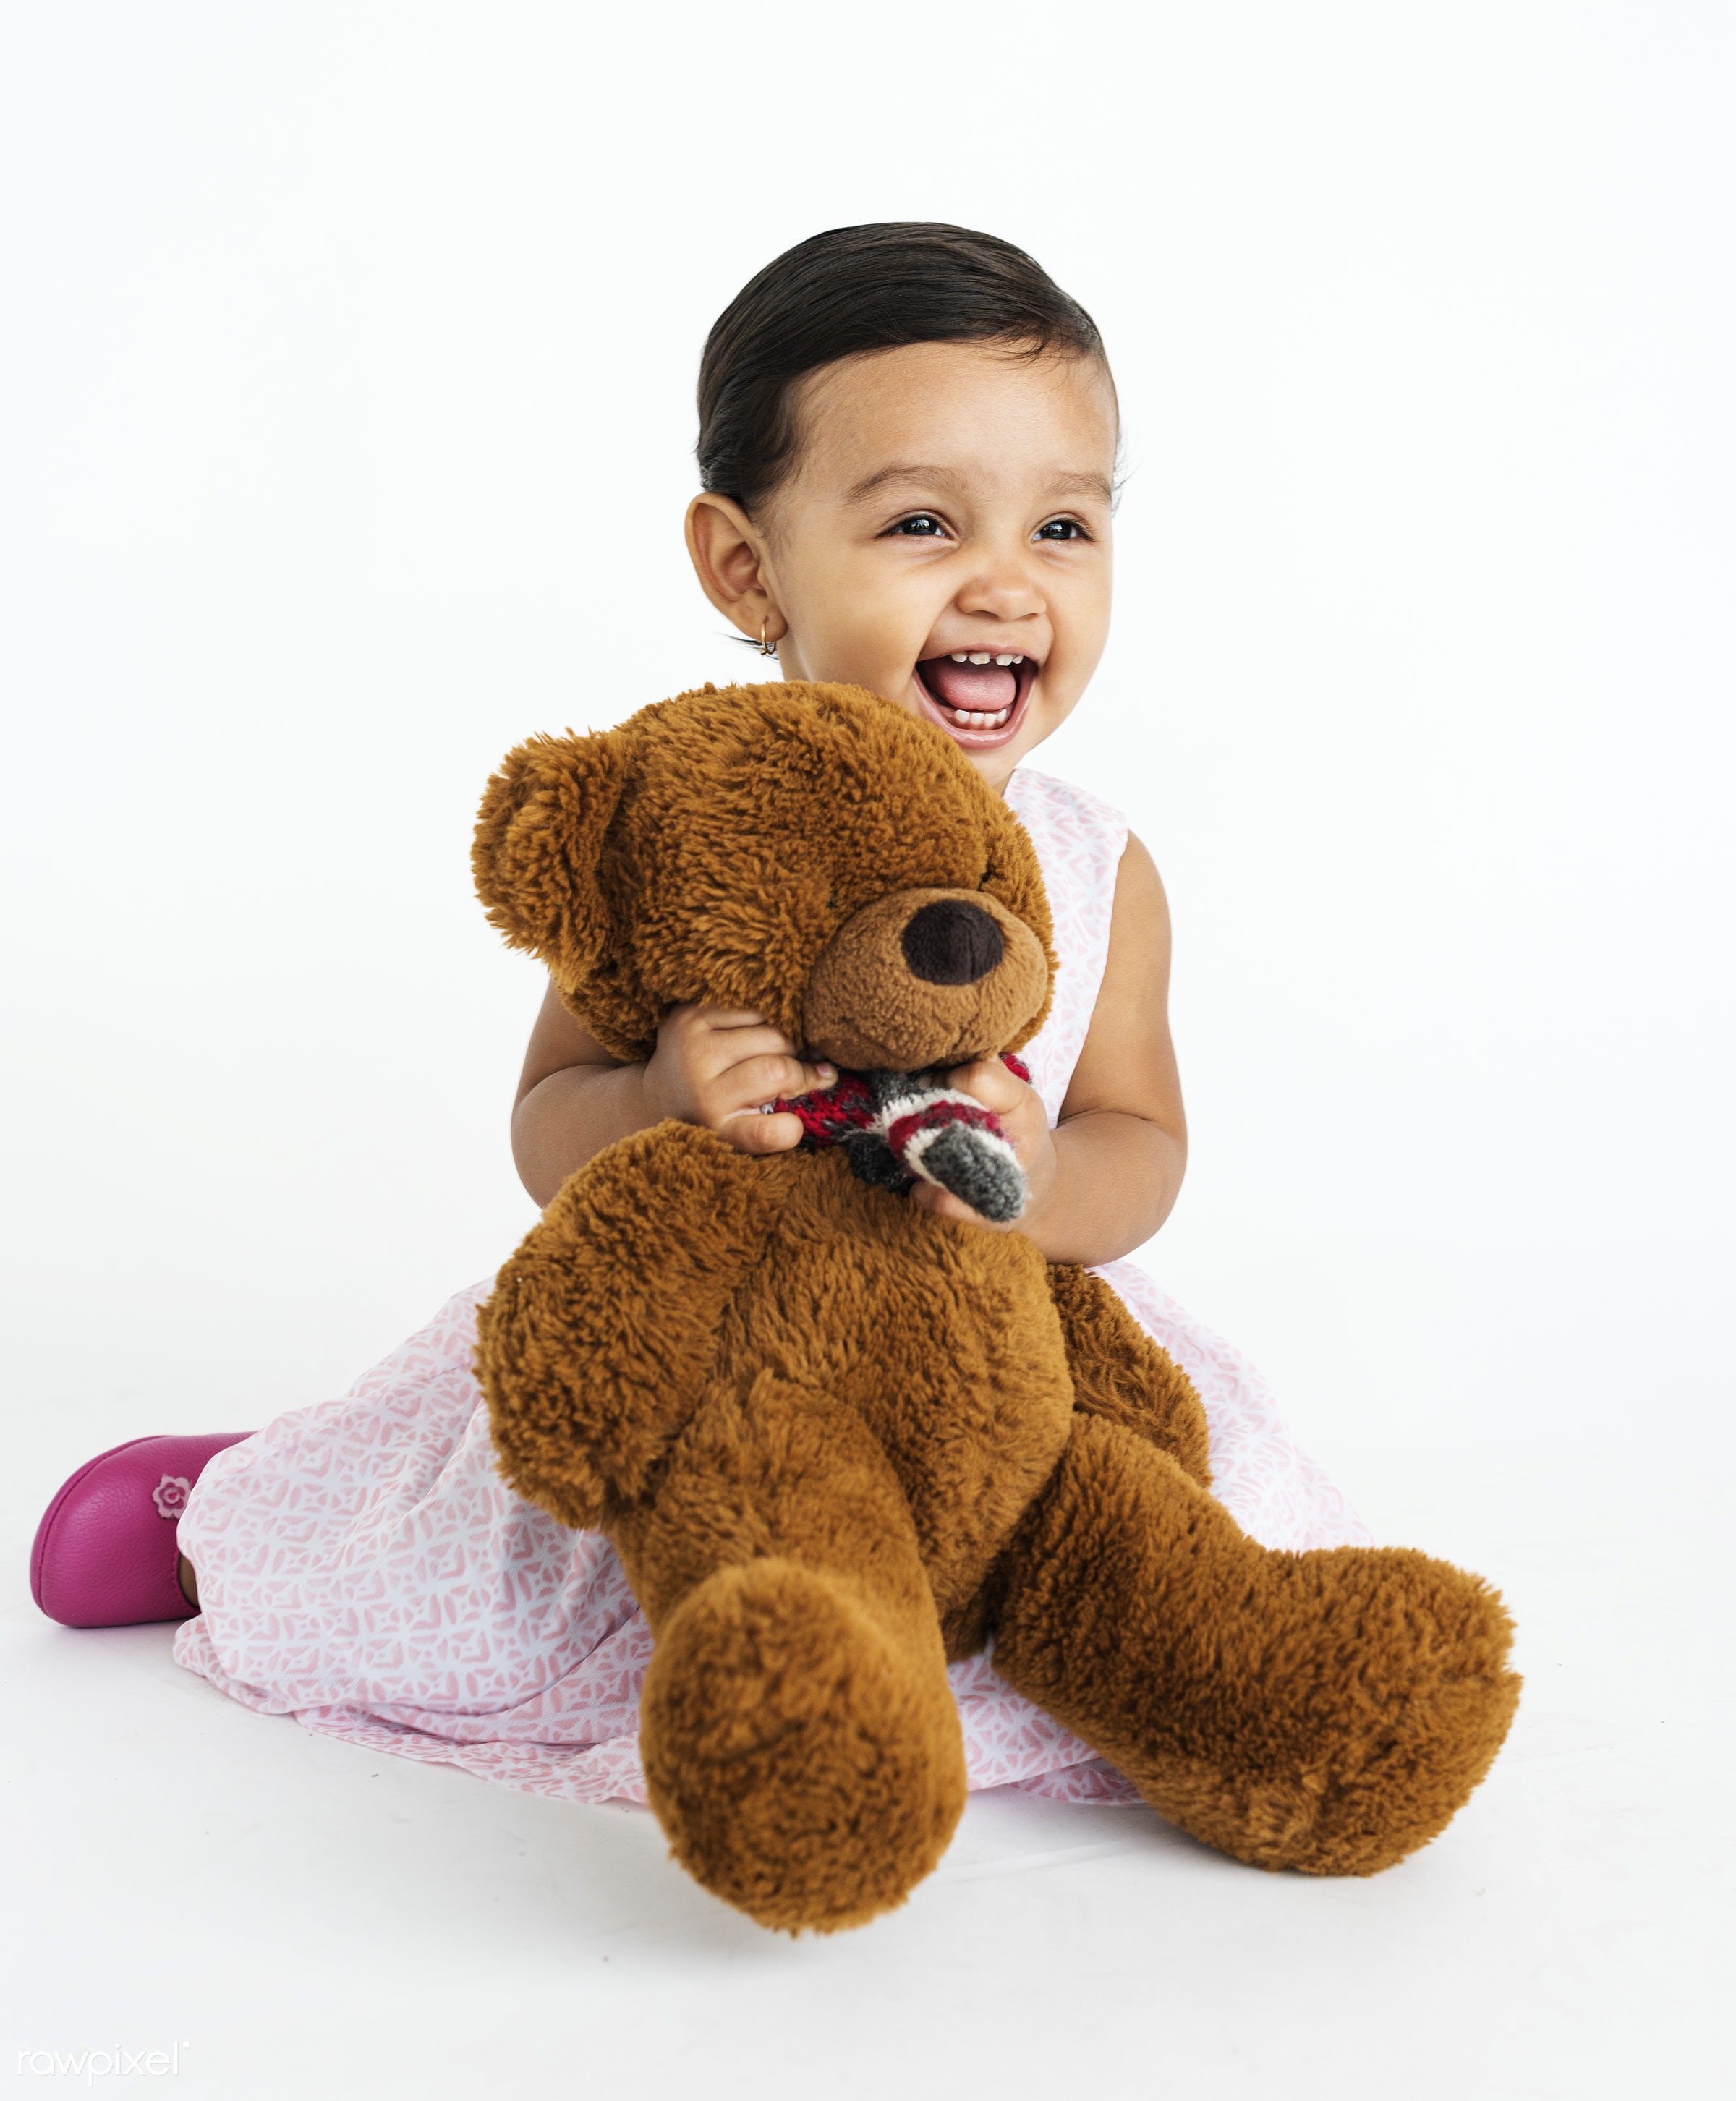 studio, expression, person, hug, holding, people, kid, childhood, smile, cheerful, smiling, isolated, little girl, white,...